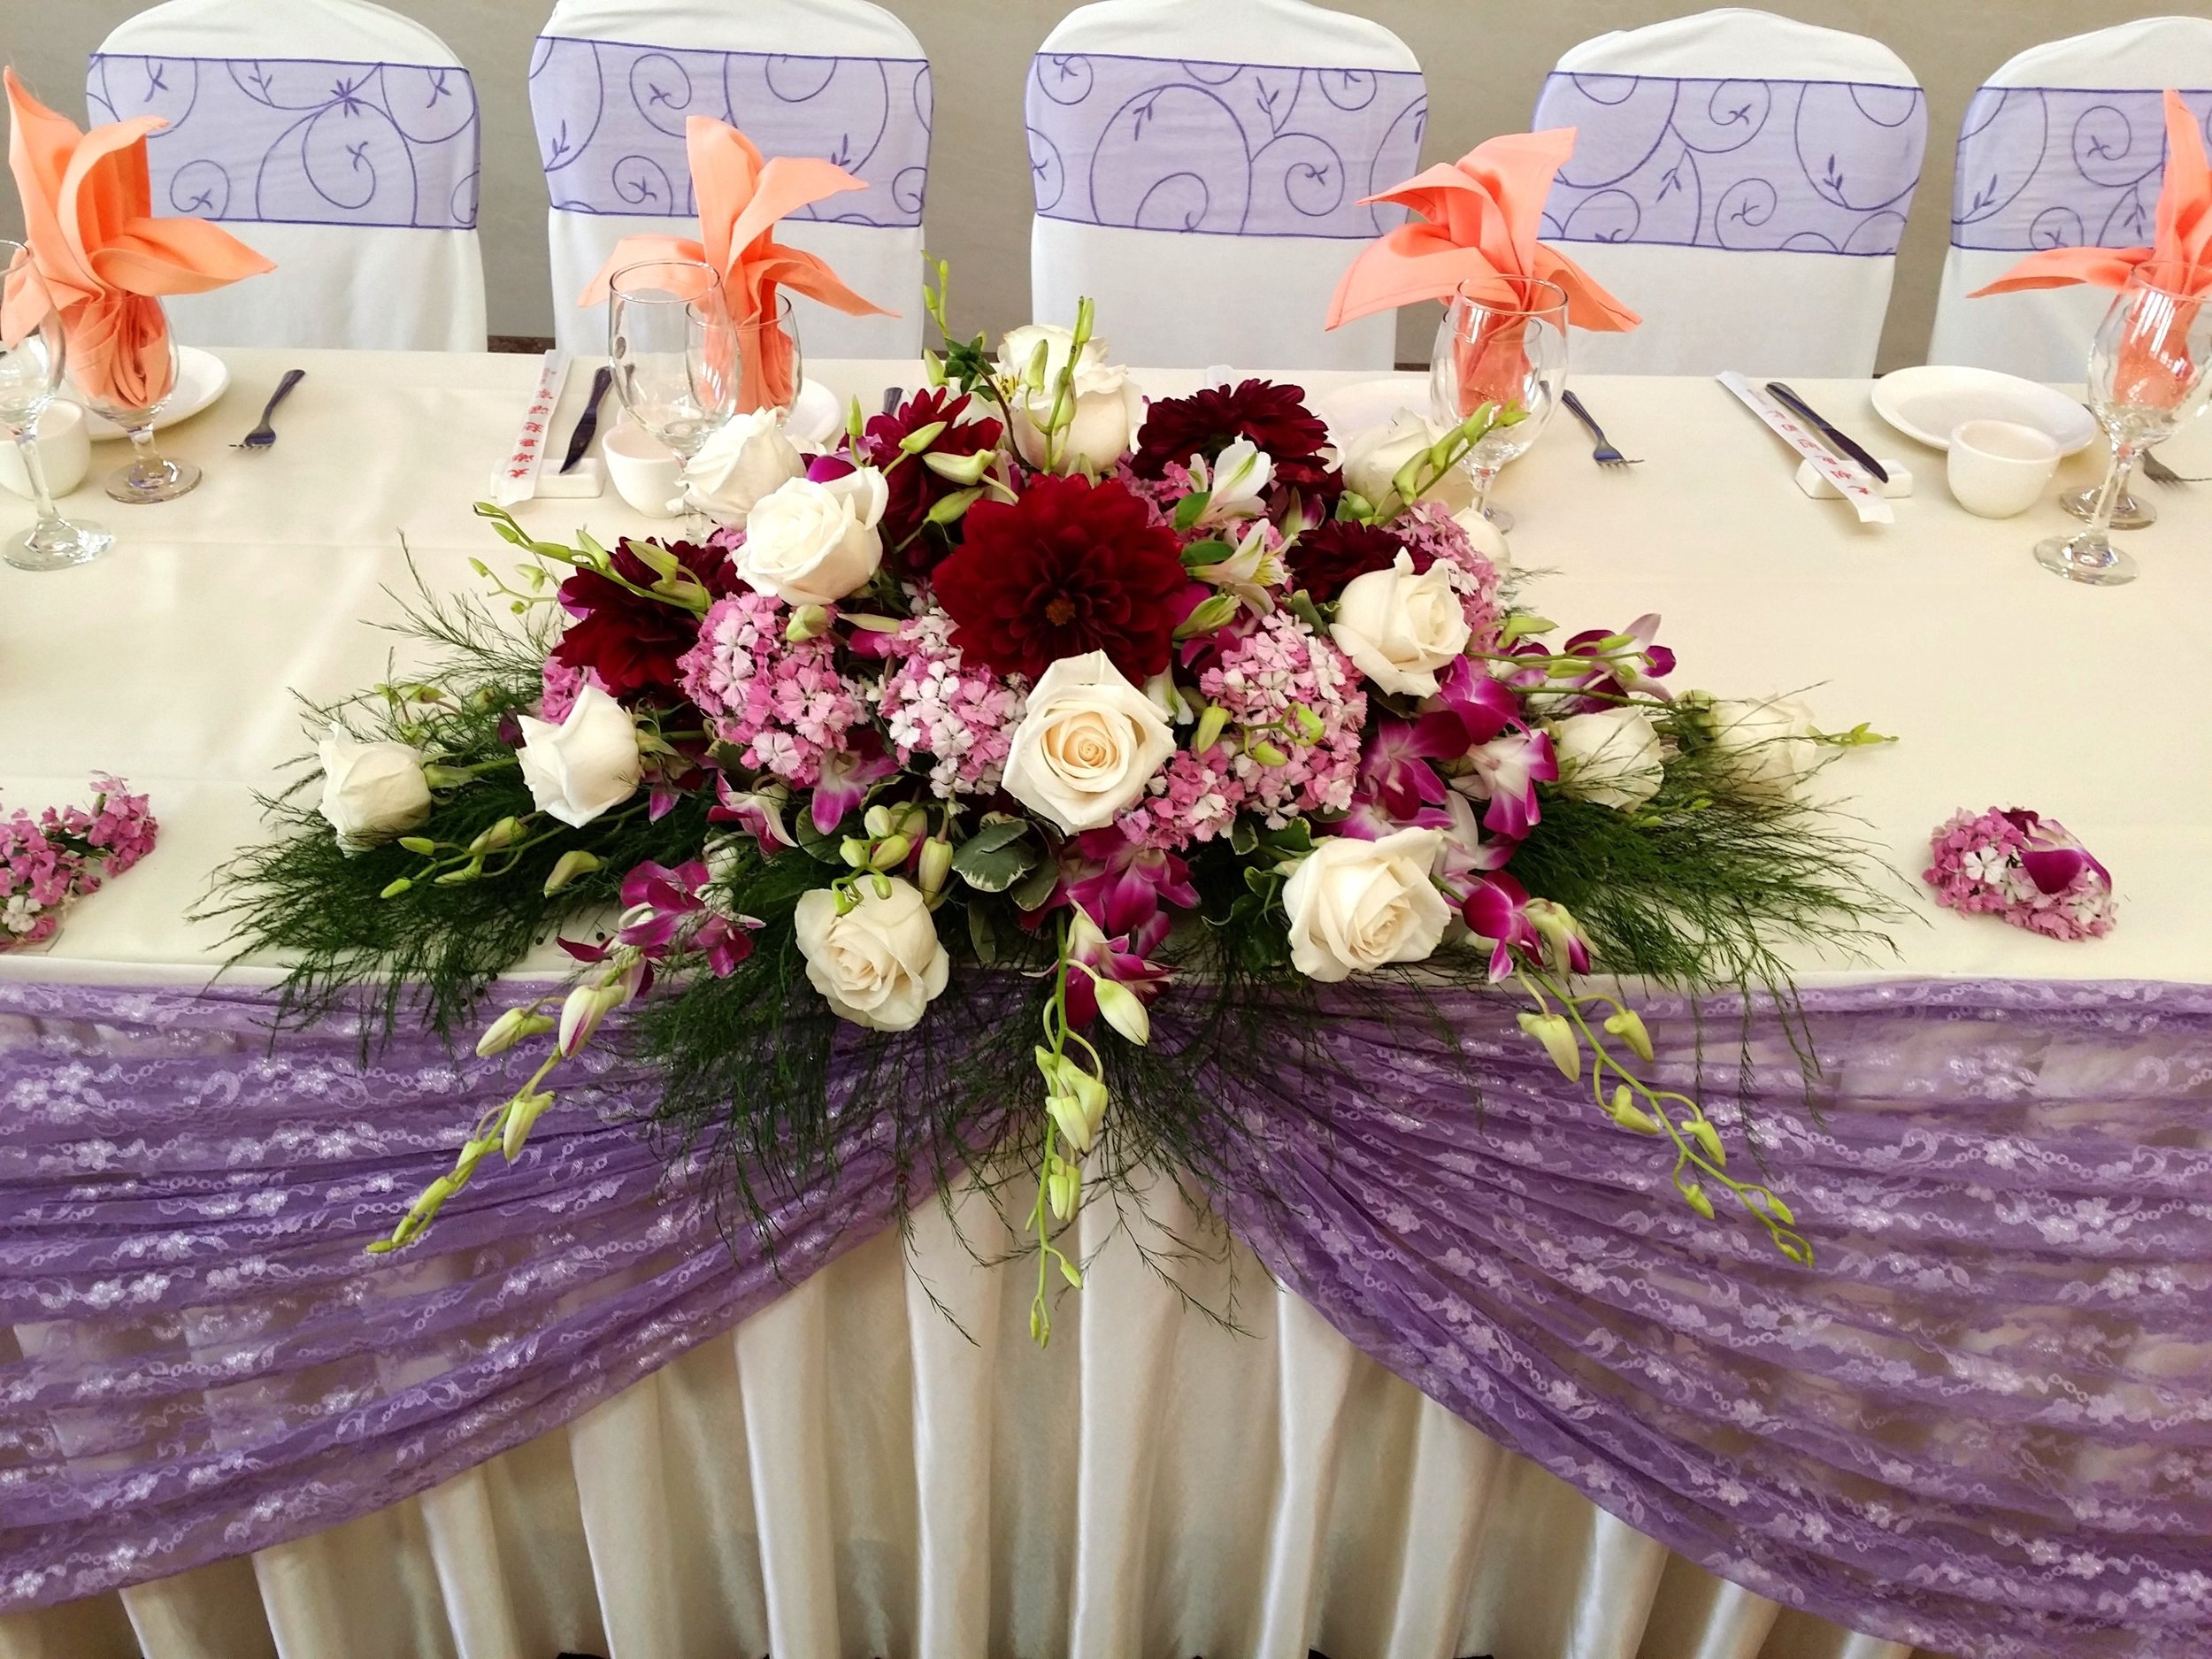 - This is another head table centerpiece that highlights different flowers. What makes this one stand out is the stark contrast of the light and dark that these different flowers bring.